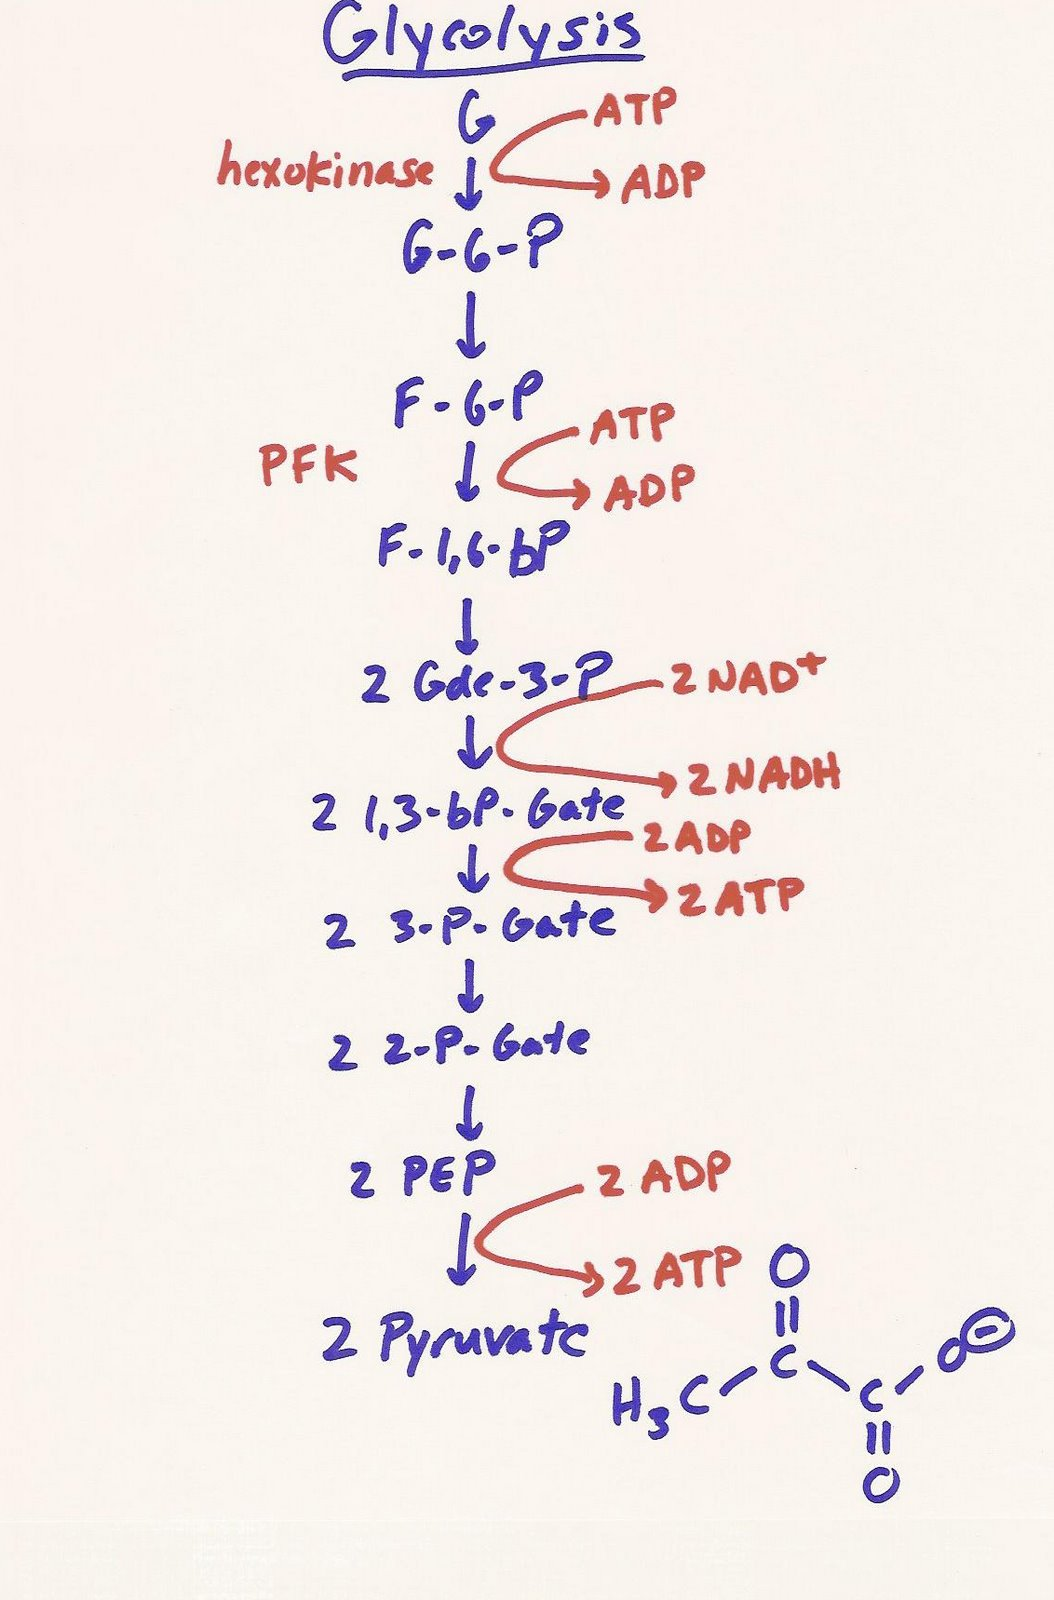 glycolysis mcat need energy memorize know lecture bio study pathway diagram systems pathways structures process basic biochemistry physiology biohacking biology